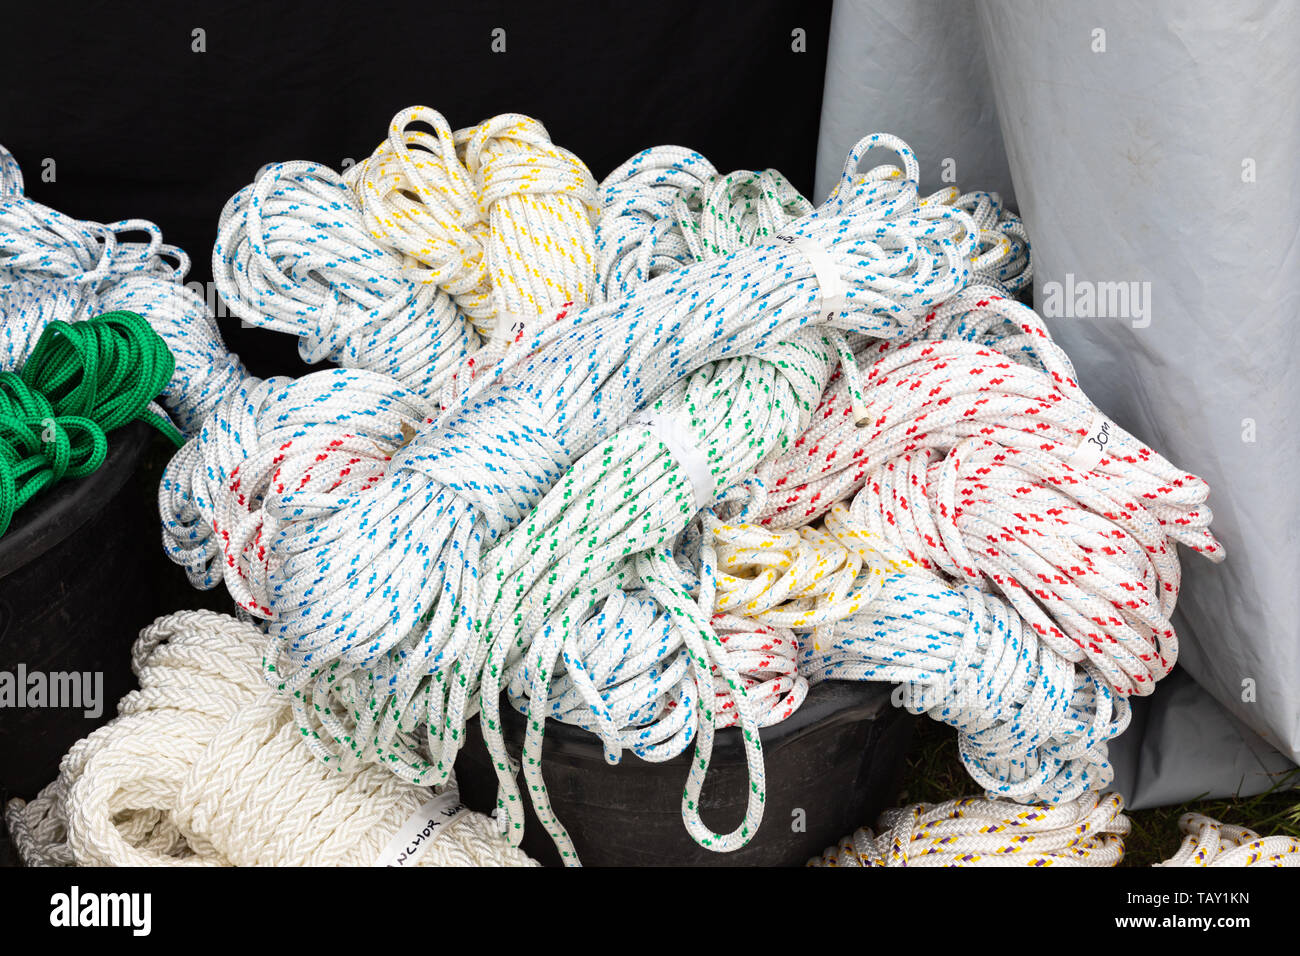 Skeins of white nylon rope with coloured flecks placed haphazardly in a black bucket. - Stock Image